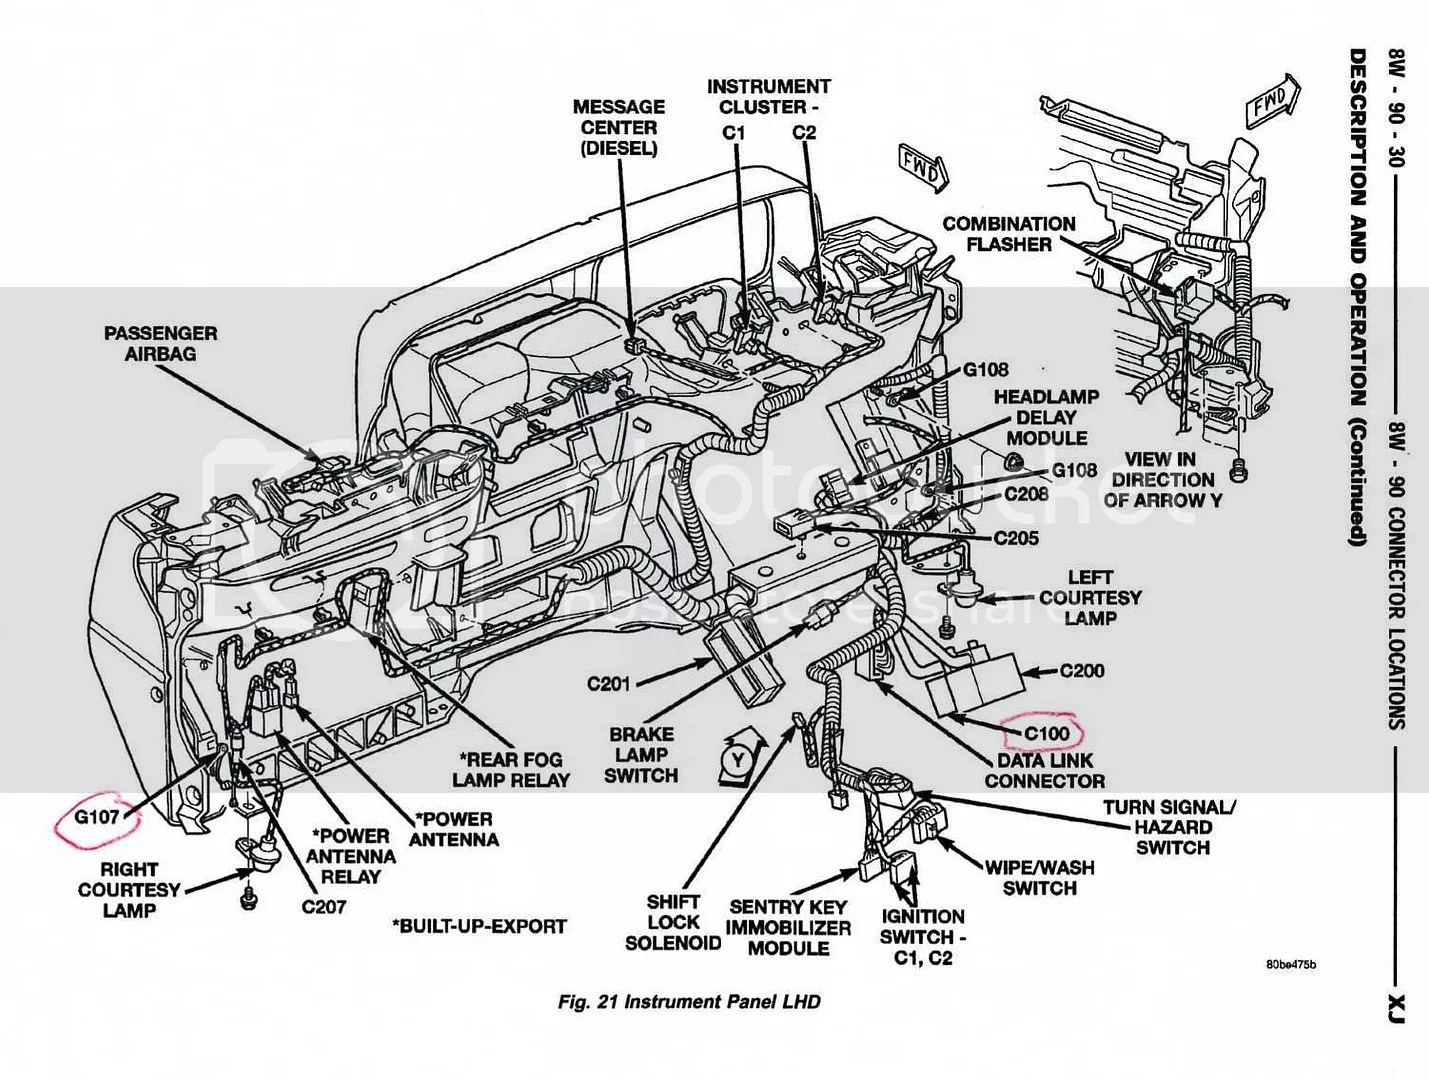 hight resolution of 2003 jeep grand cherokee engine diagram wiring diagram centre 1997 jeep cherokee engine diagram